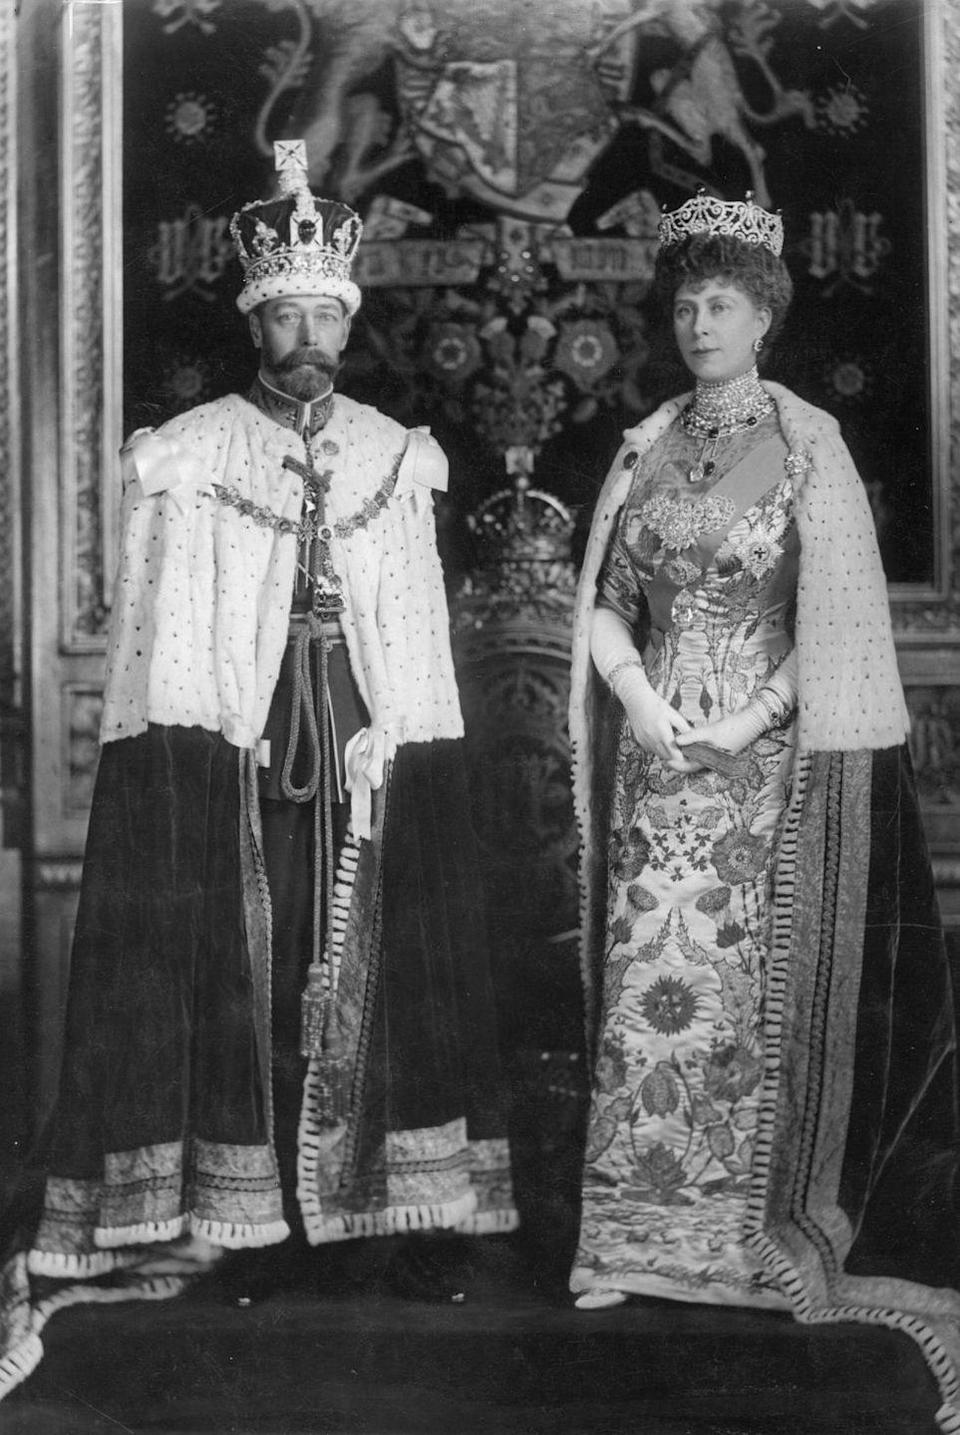 <p>King George V, Elizabeth II's grandfather, ruled Britain from 1910 (following the death of his father, Edward VII) until his passing in 1936. Here, he's pictured with his wife, Queen Mary, formerly Princess Mary of Teck, at the Robing room of the House of Lords.</p>